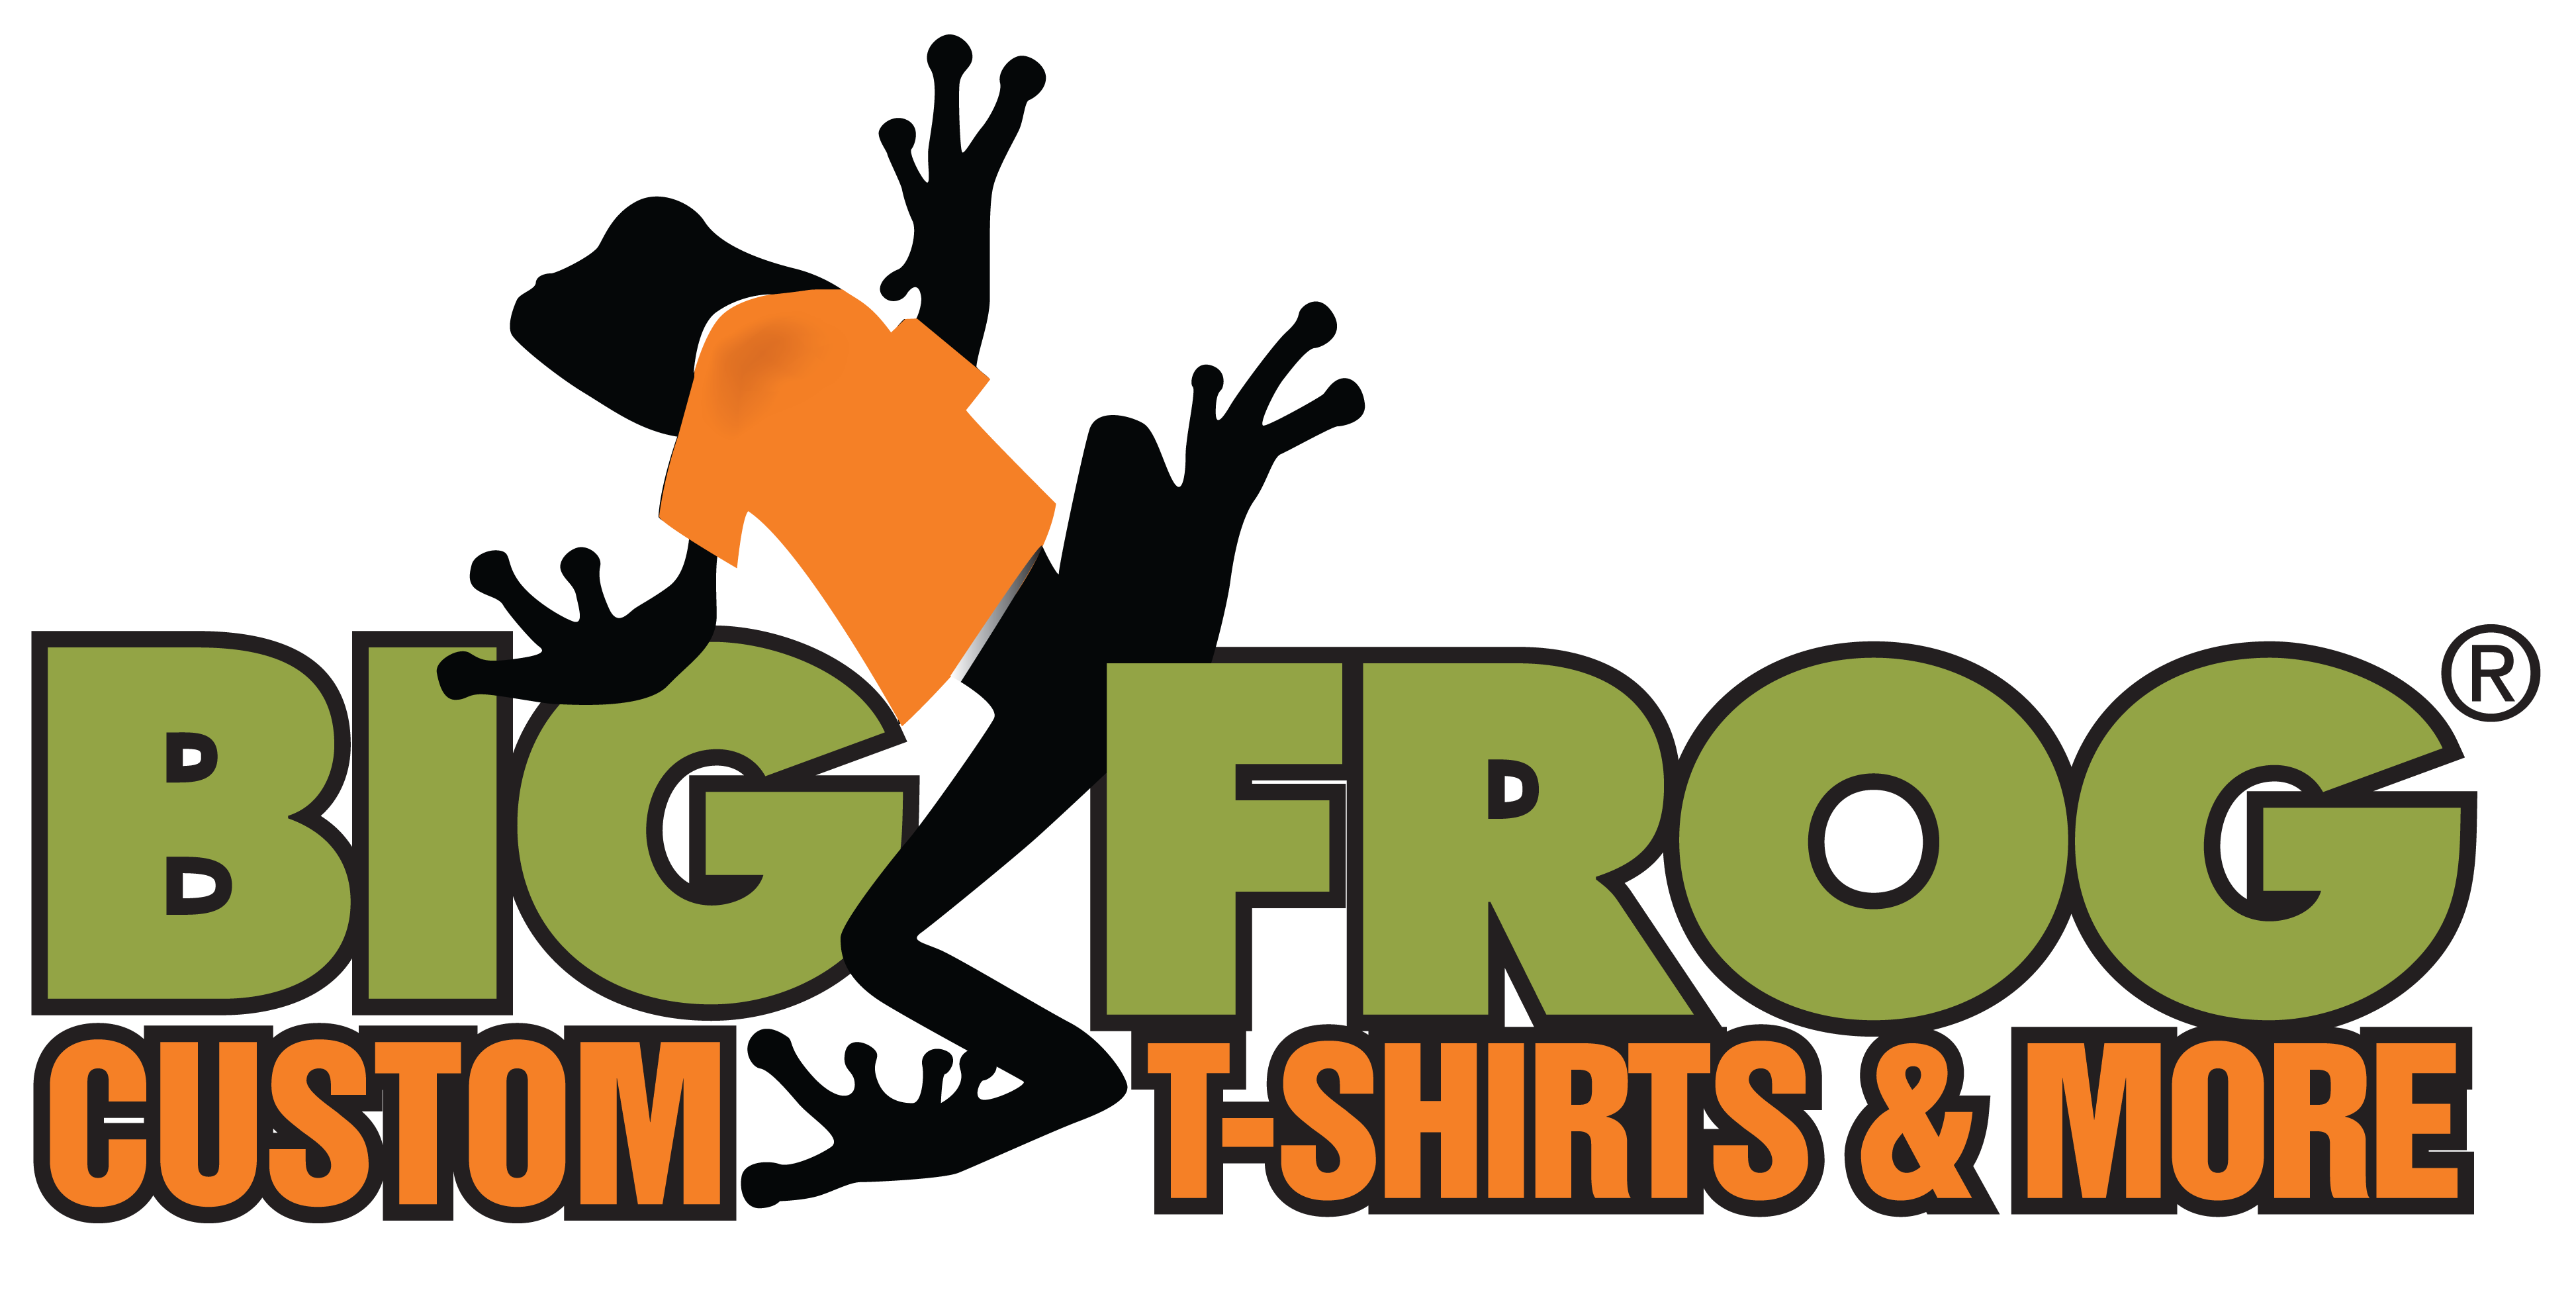 BIG FROG Custom T-Shirts & More of Pearland